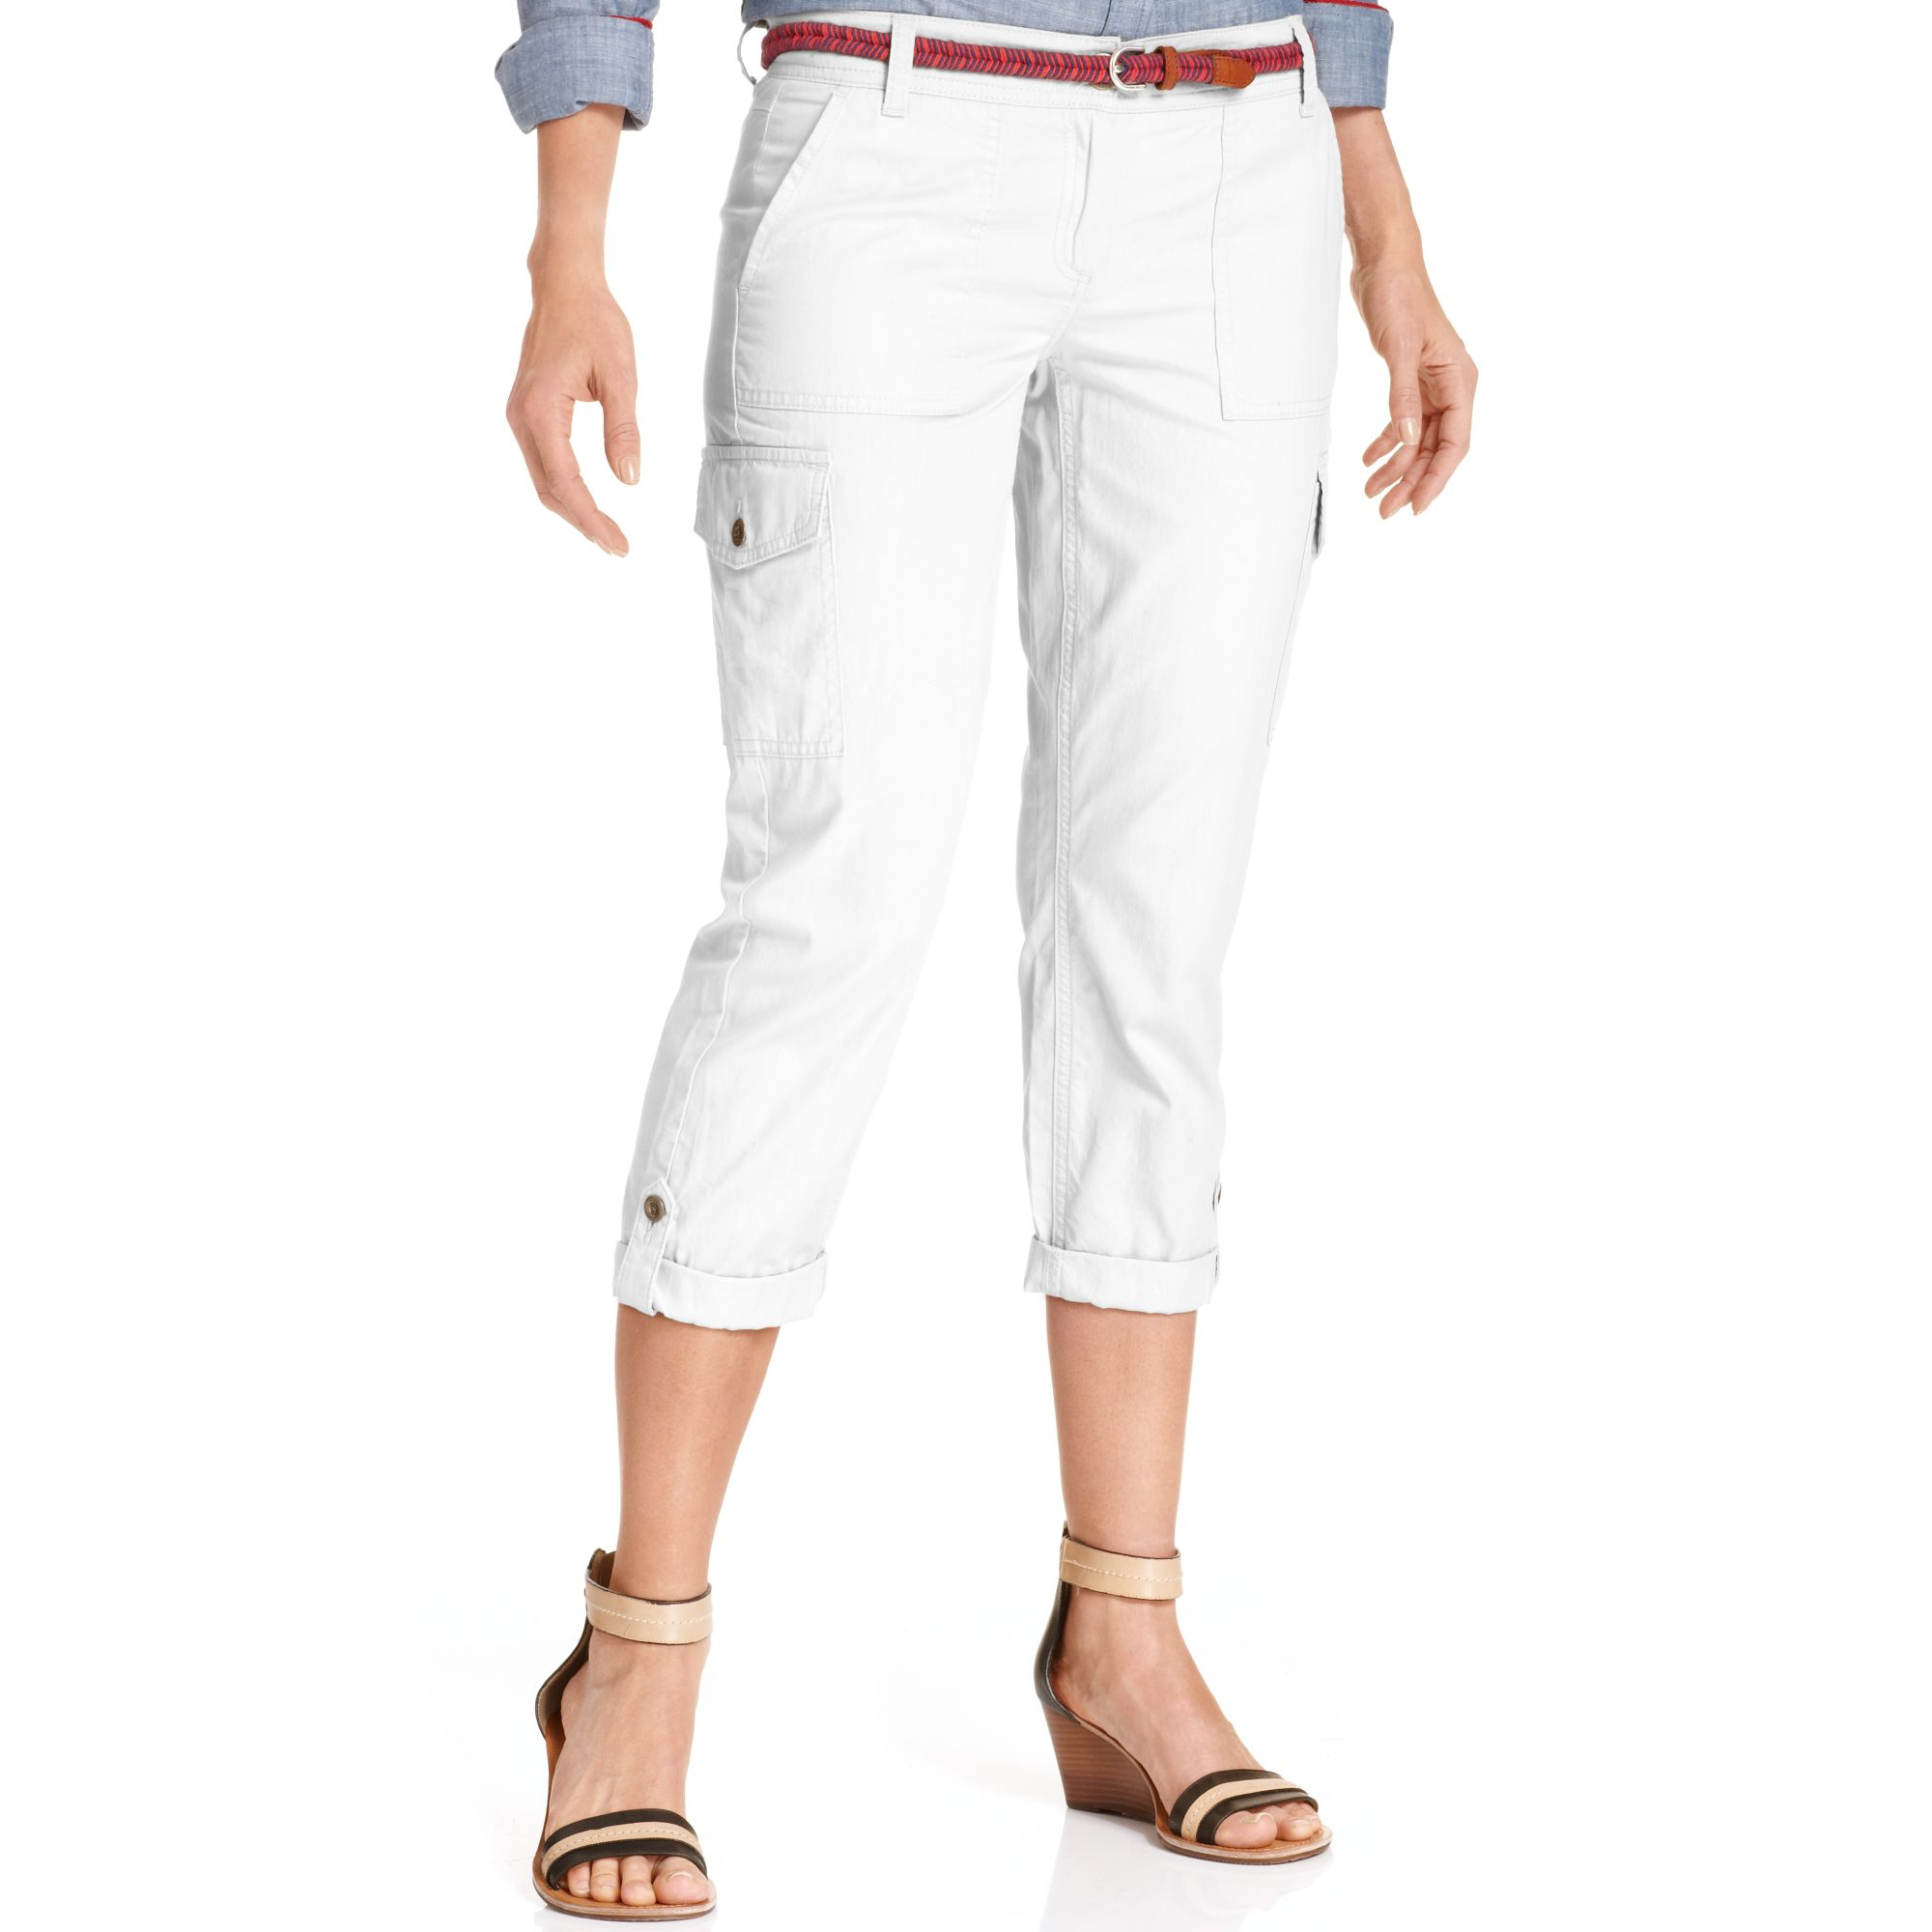 b8c98032e Tommy Hilfiger Cropped Cargo Pants in White - Lyst